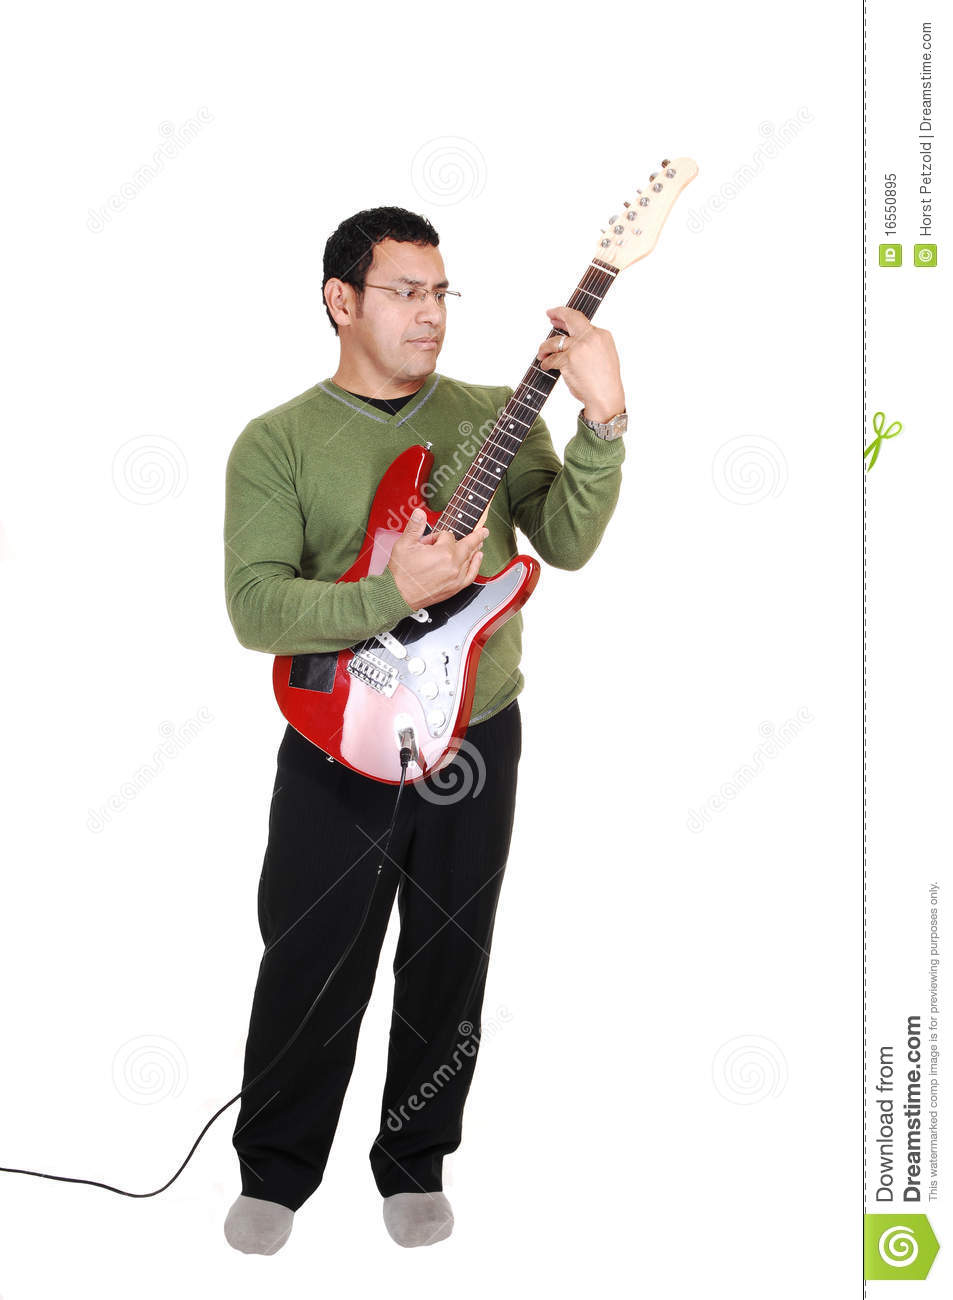 Man standing with guitar stock image Image of black  16550895